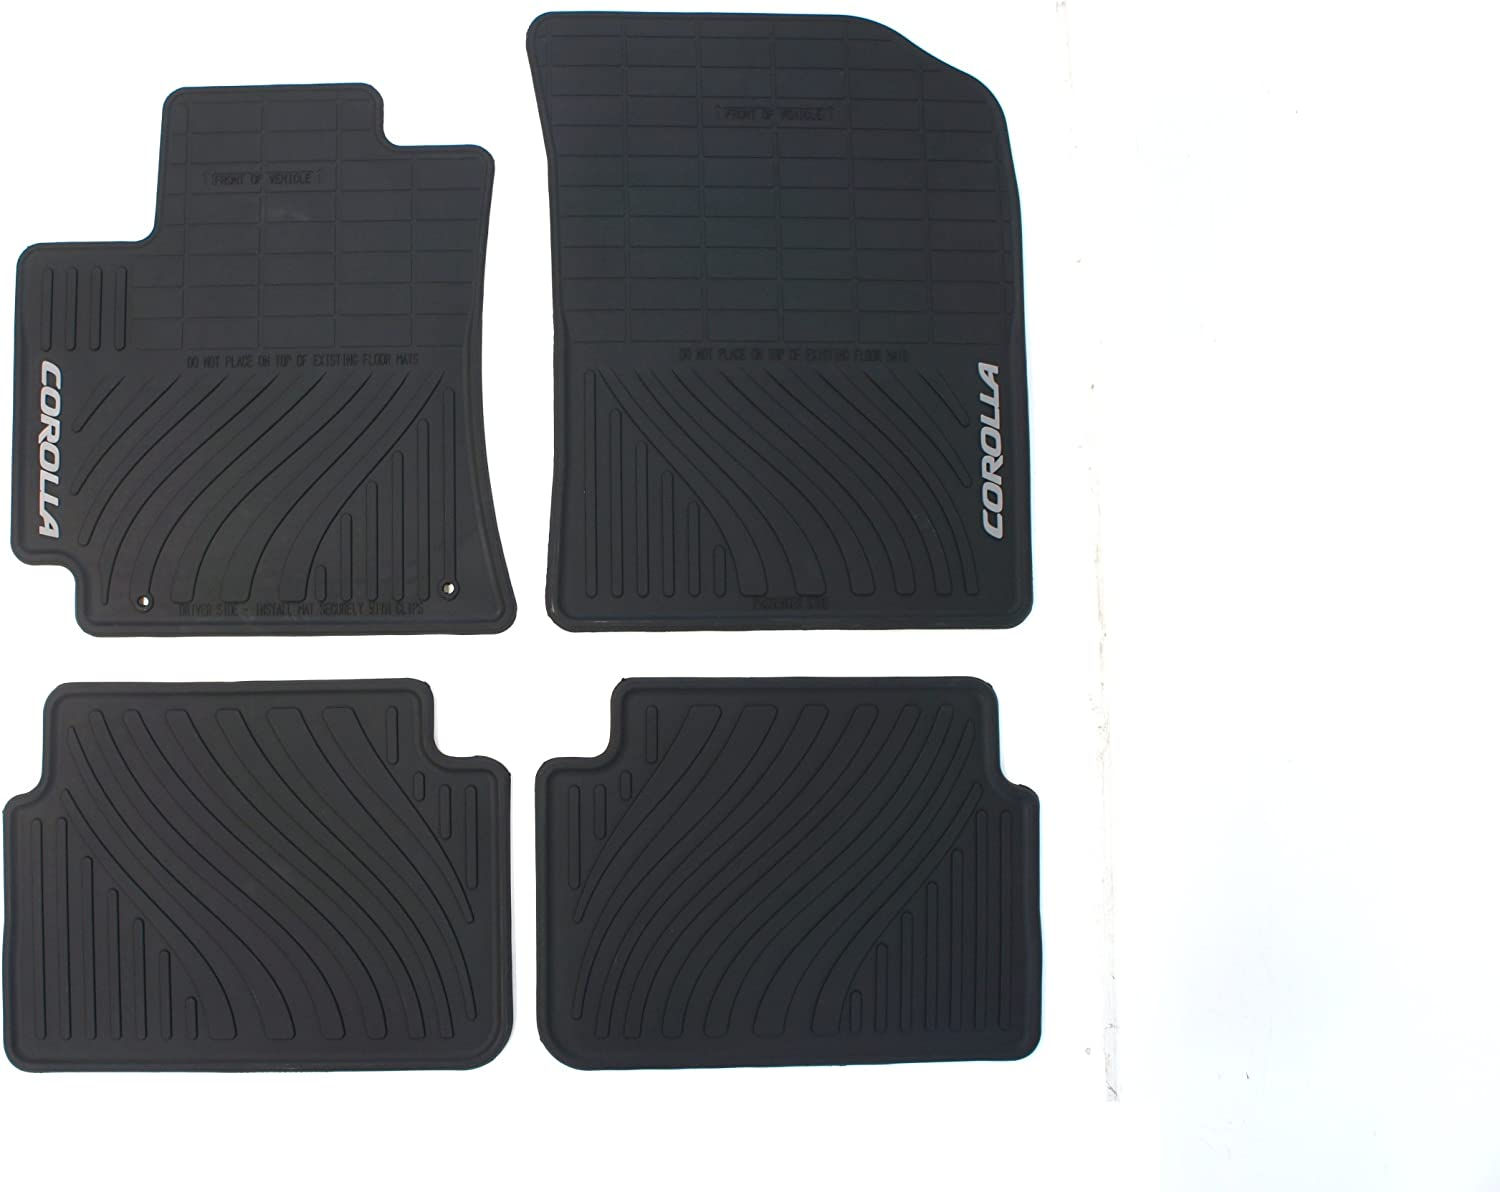 Genuine Toyota Accessories PT908-02110-20 Front and Rear All-Weather Floor Mat - (Black), Set of 4